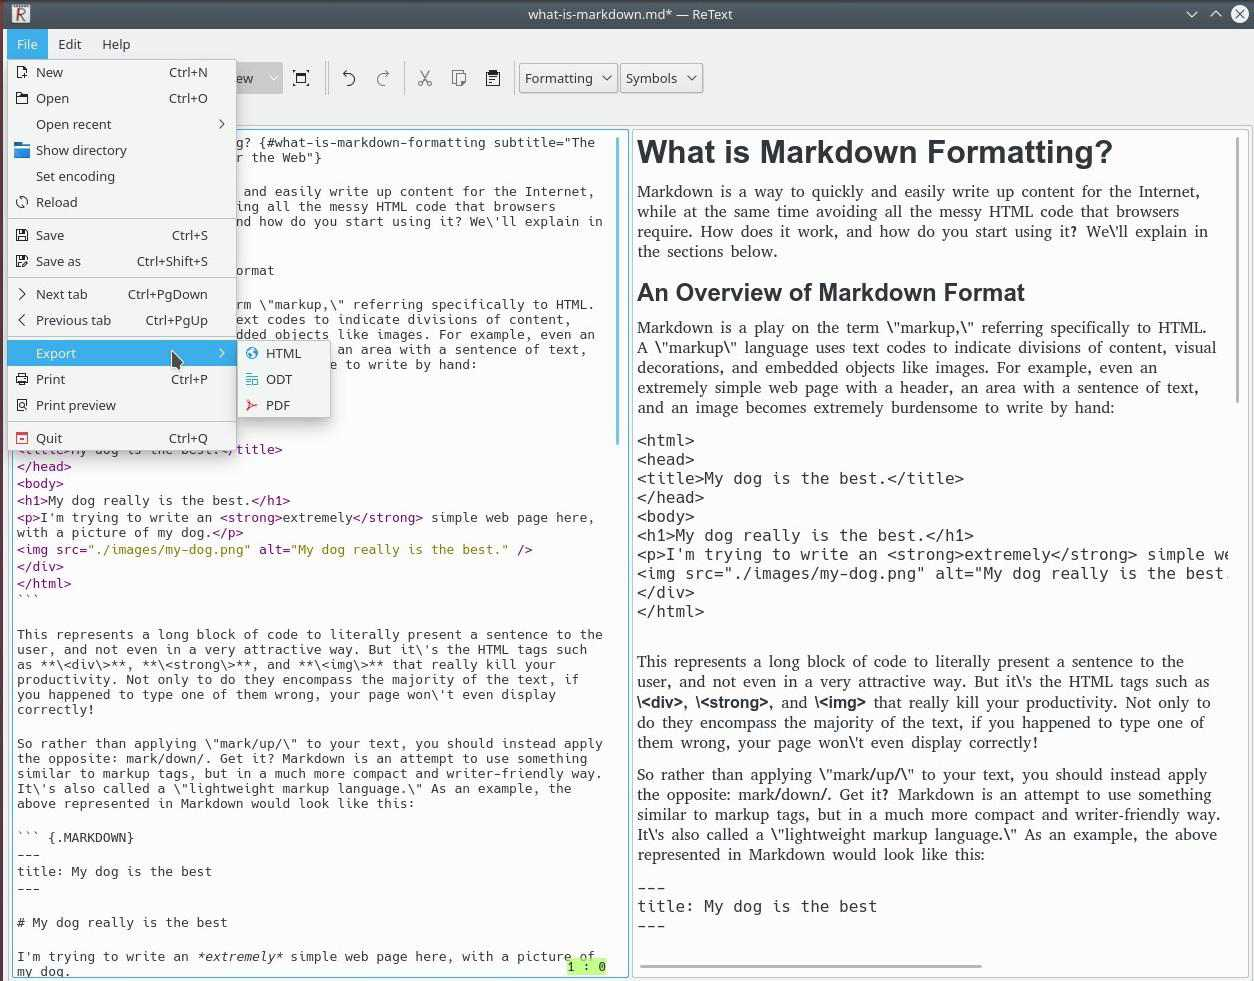 What Is Markdown Formatting?